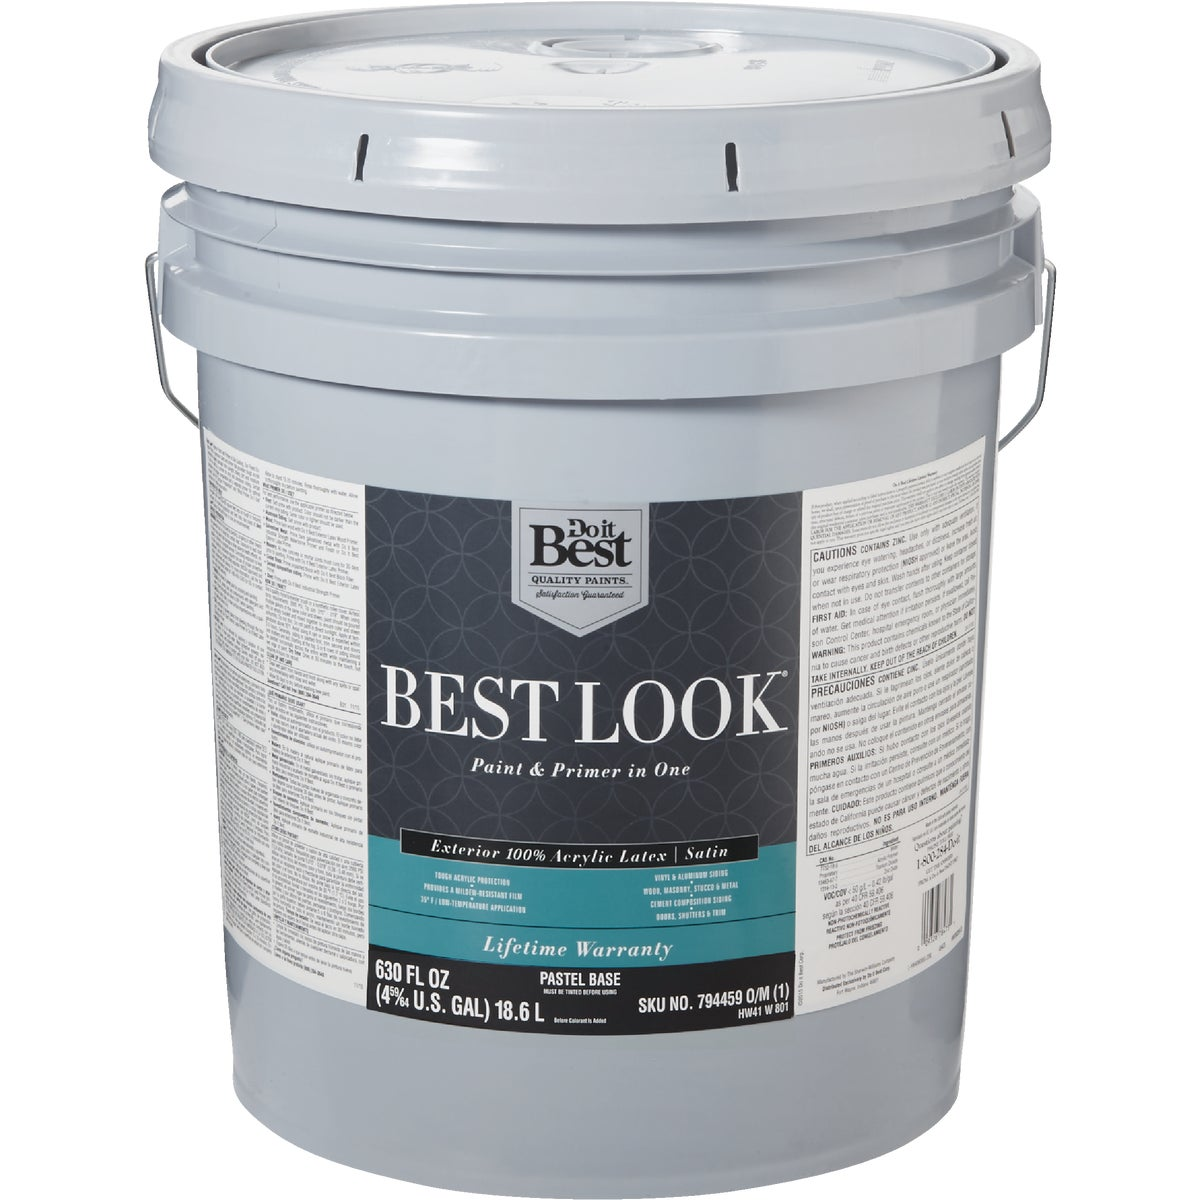 EXT SAT PASTEL BS PAINT - HW41W0801-20 by Do it Best